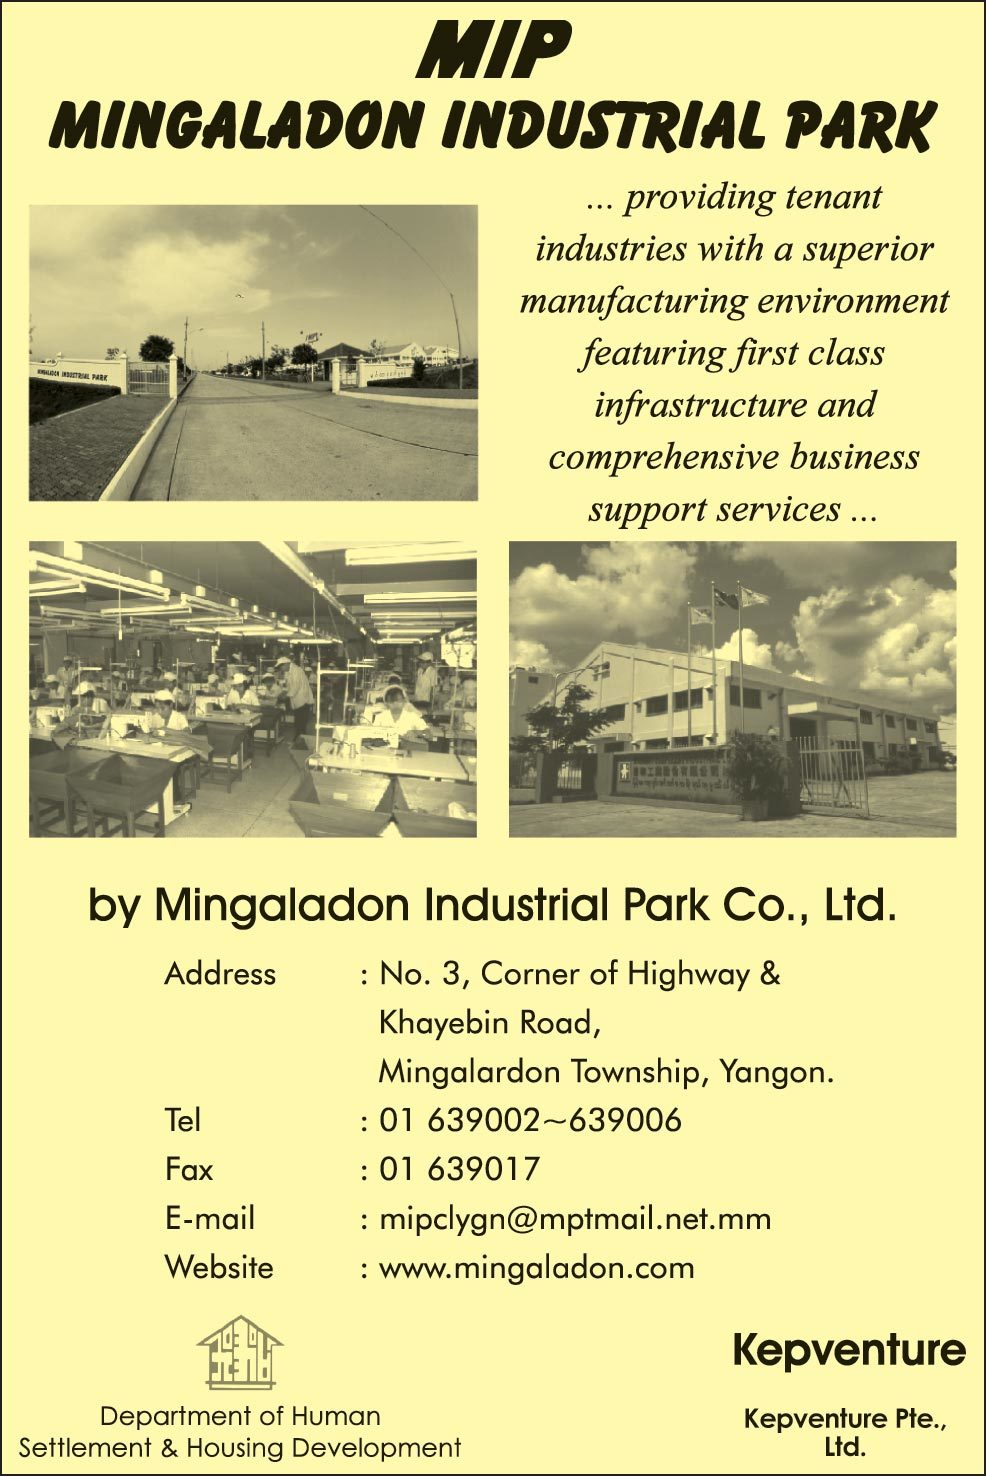 Mingaladon-Industrial-Park-Co-Ltd_Industrial-Zones_159.jpg